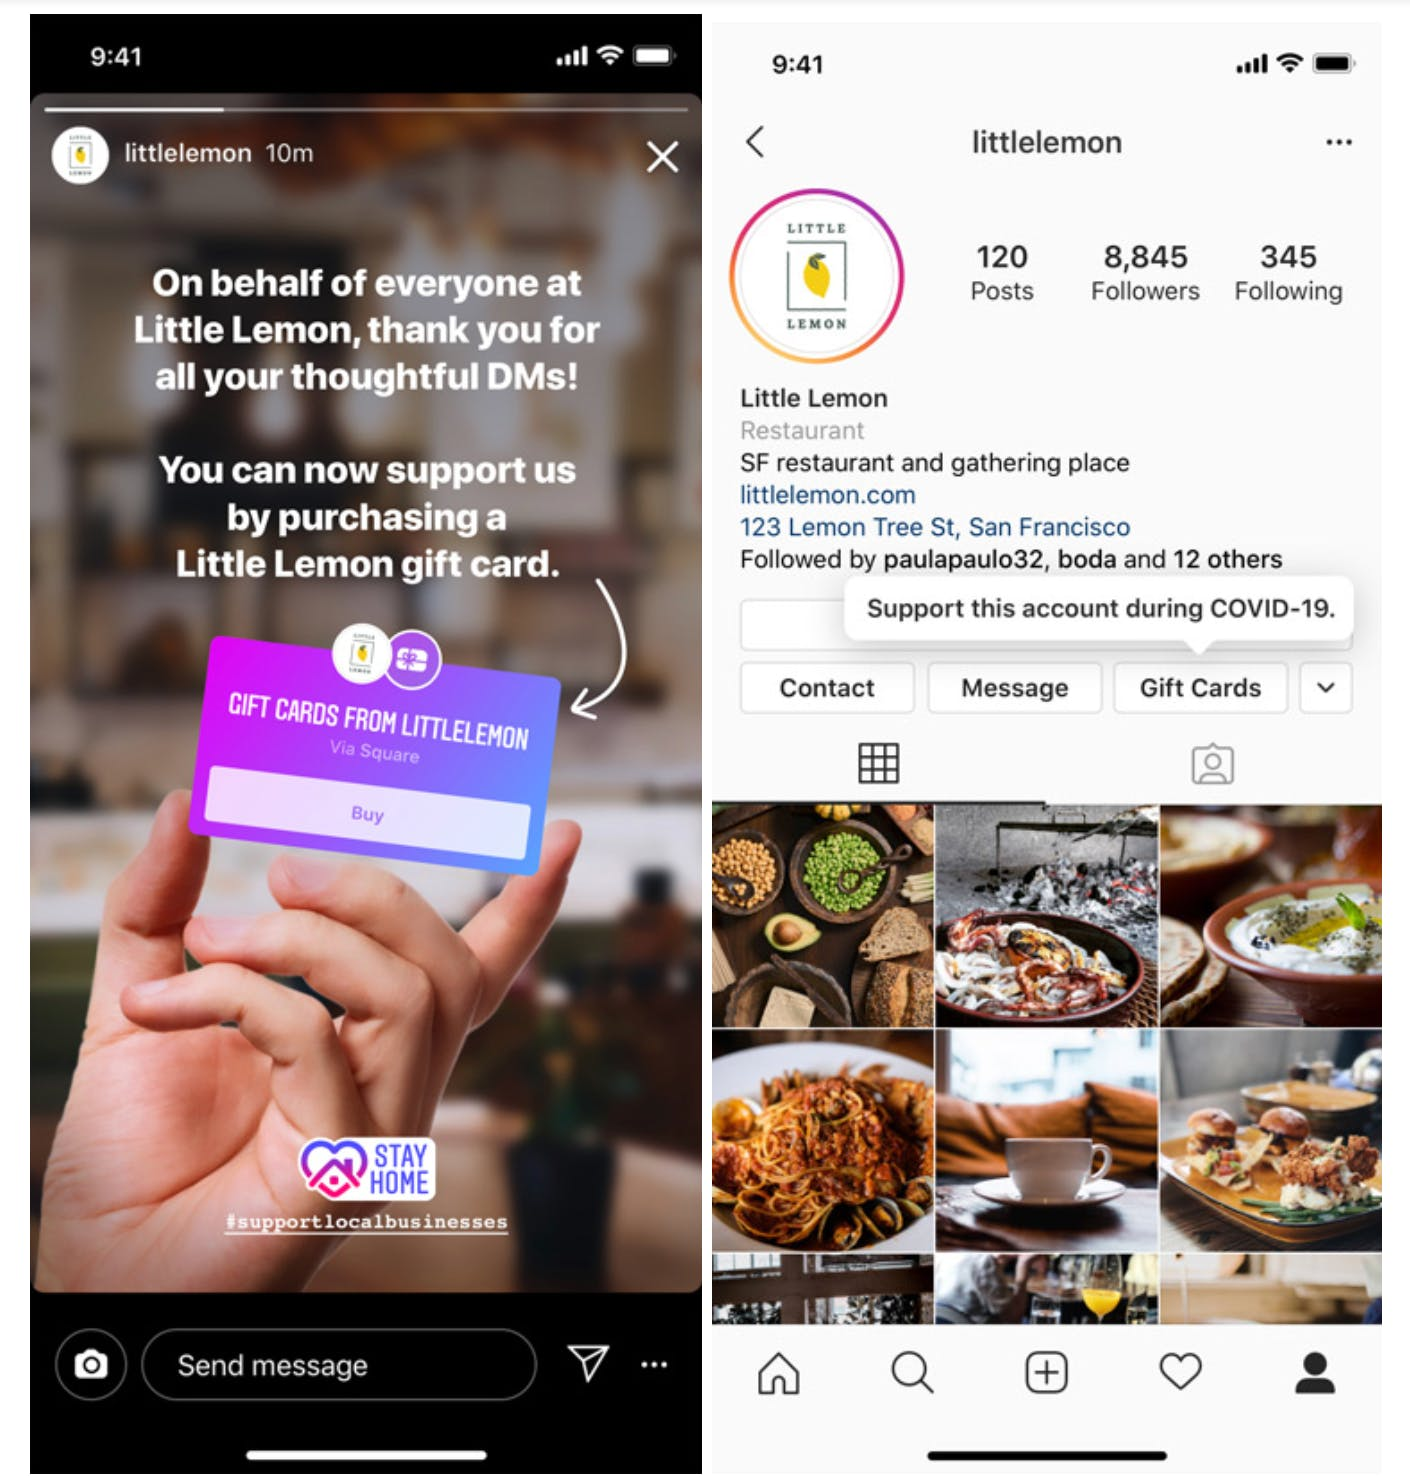 Users can buy Little Lemon's gift cards from their profile or Stories